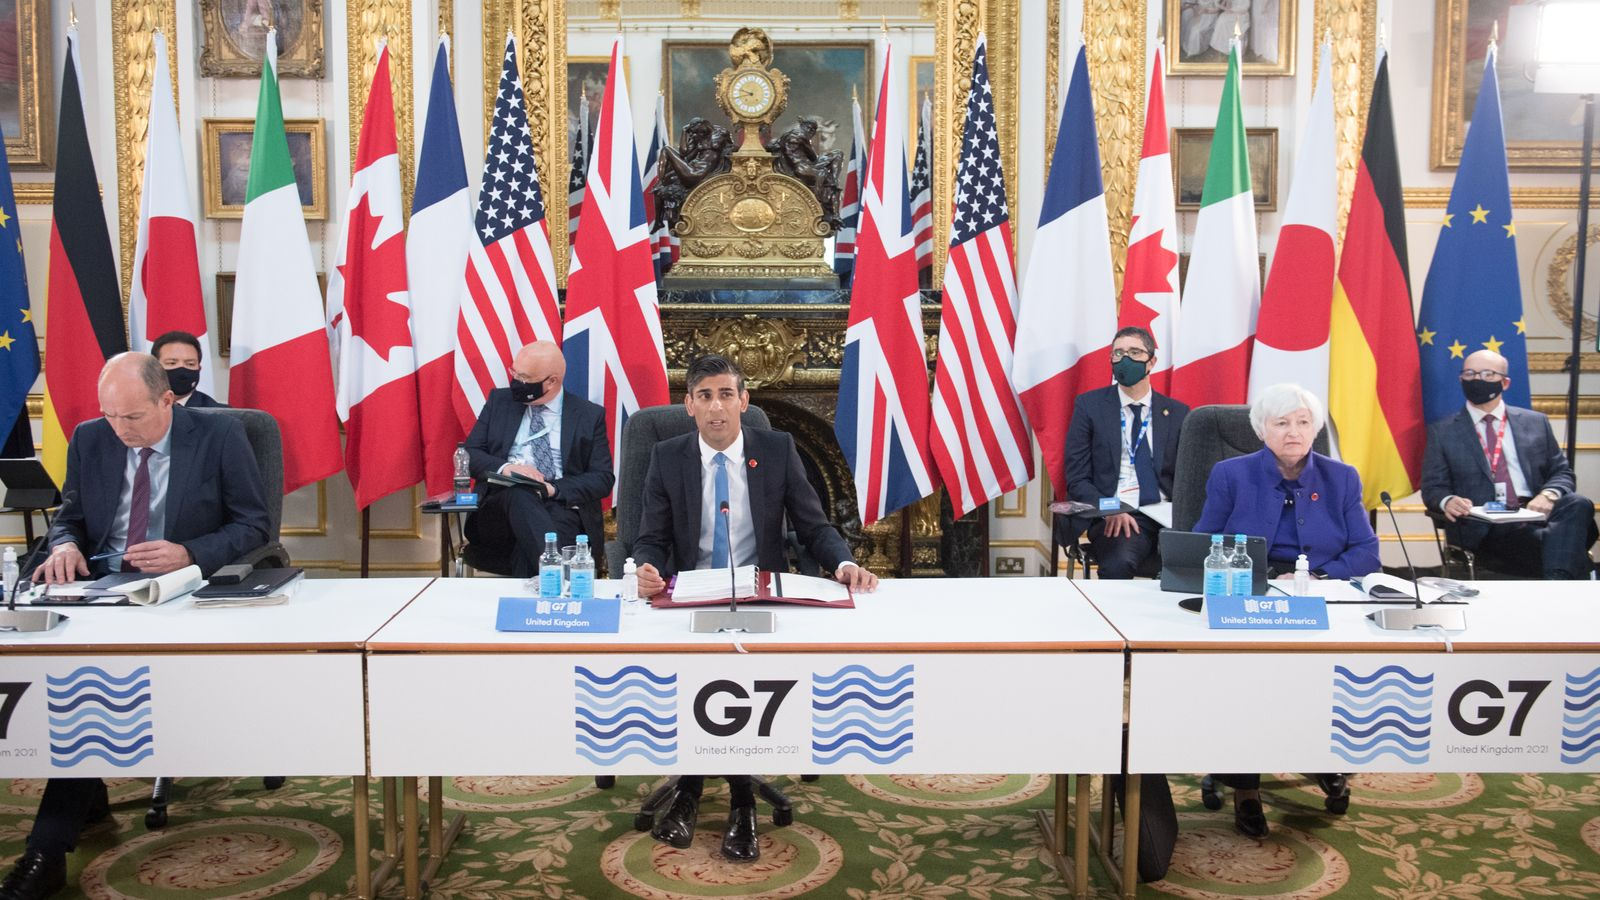 G7 Nations Close To Historic Deal To Tax Tech Giants In Plan That Would 'Change The World'